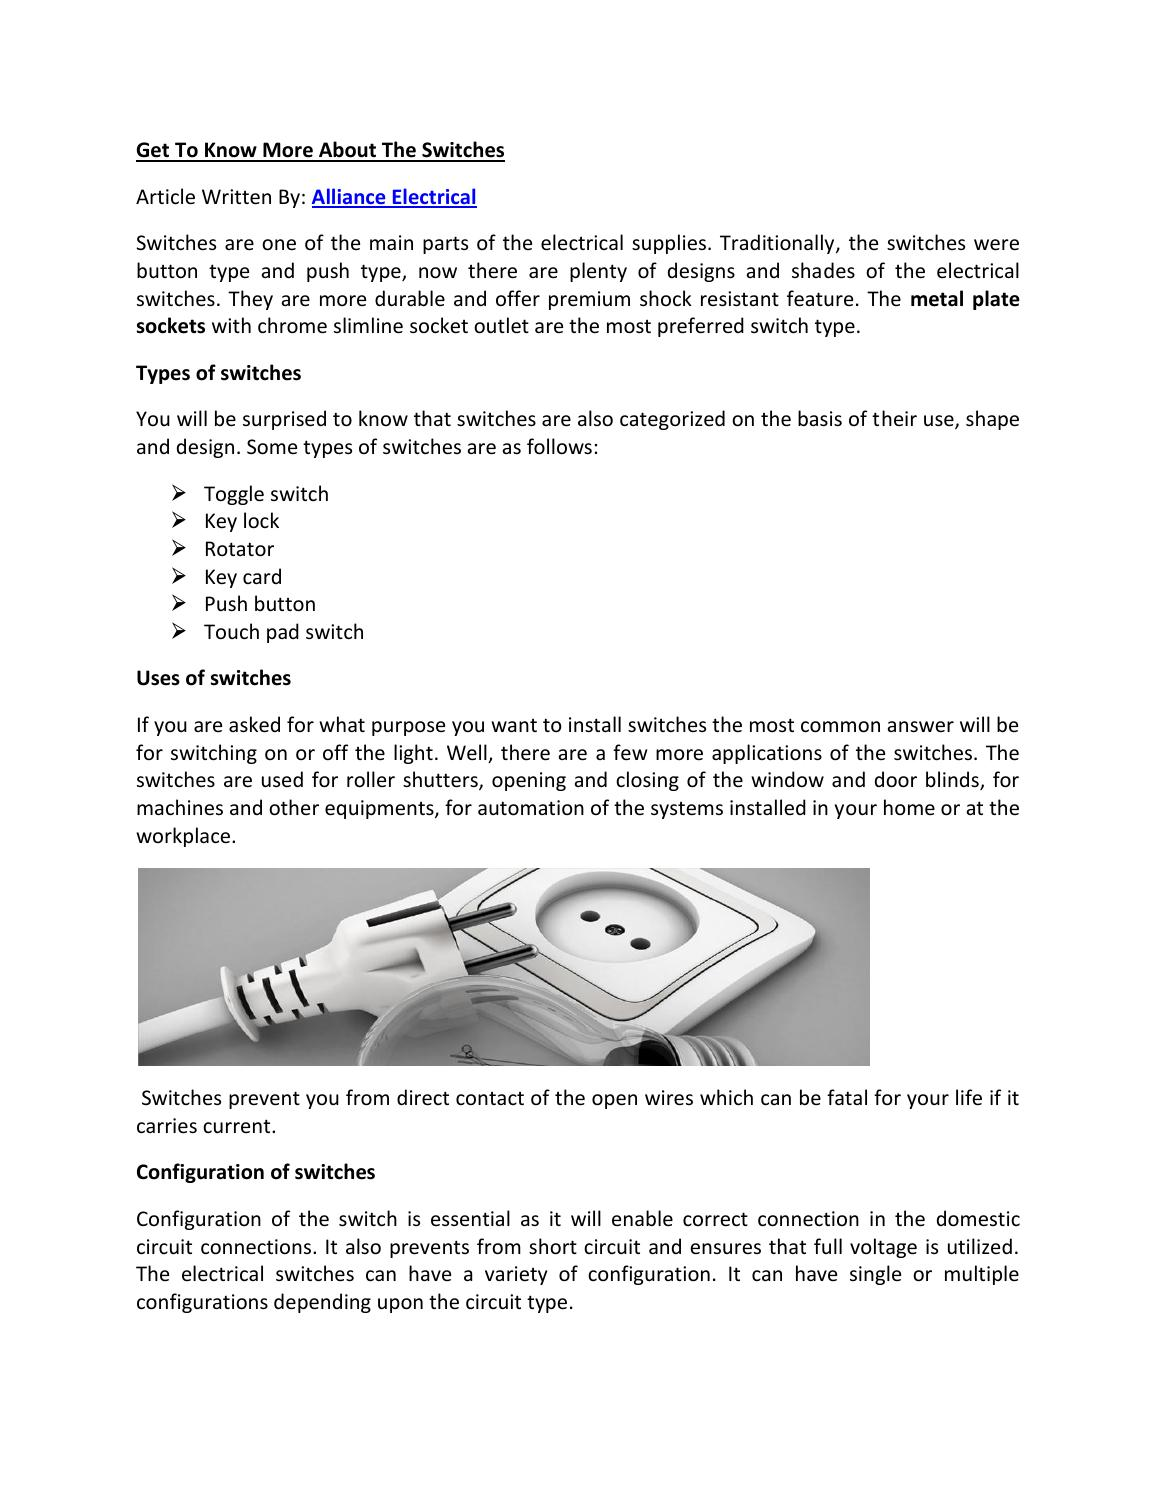 Get to know more about the switches by Alberto Lee - issuu